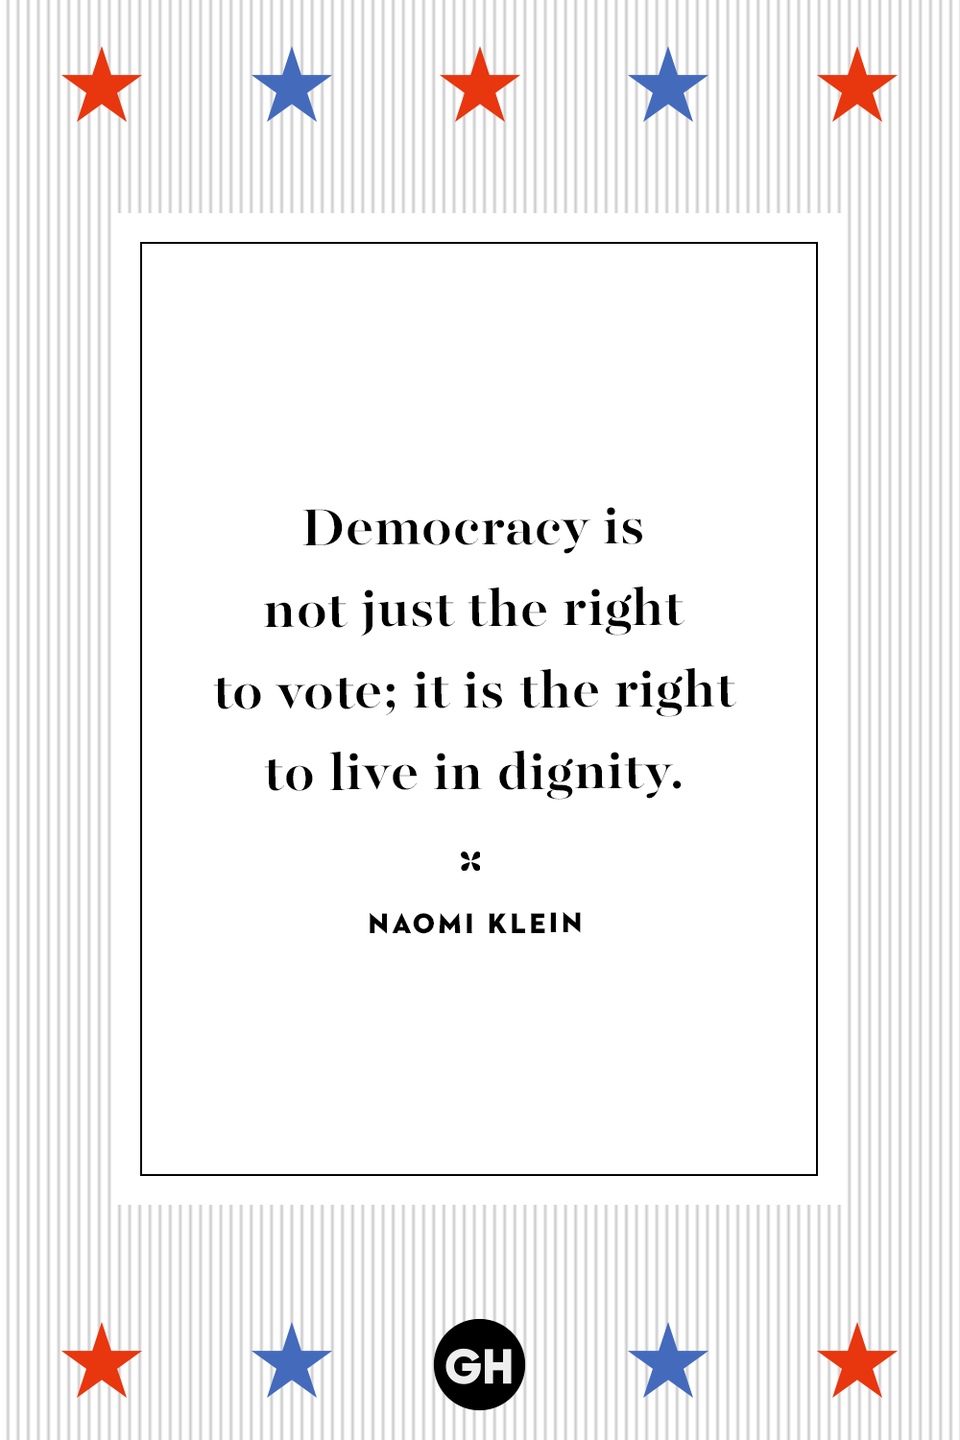 <p>Democracy is not just the right to vote; it is the right to live in dignity.</p>